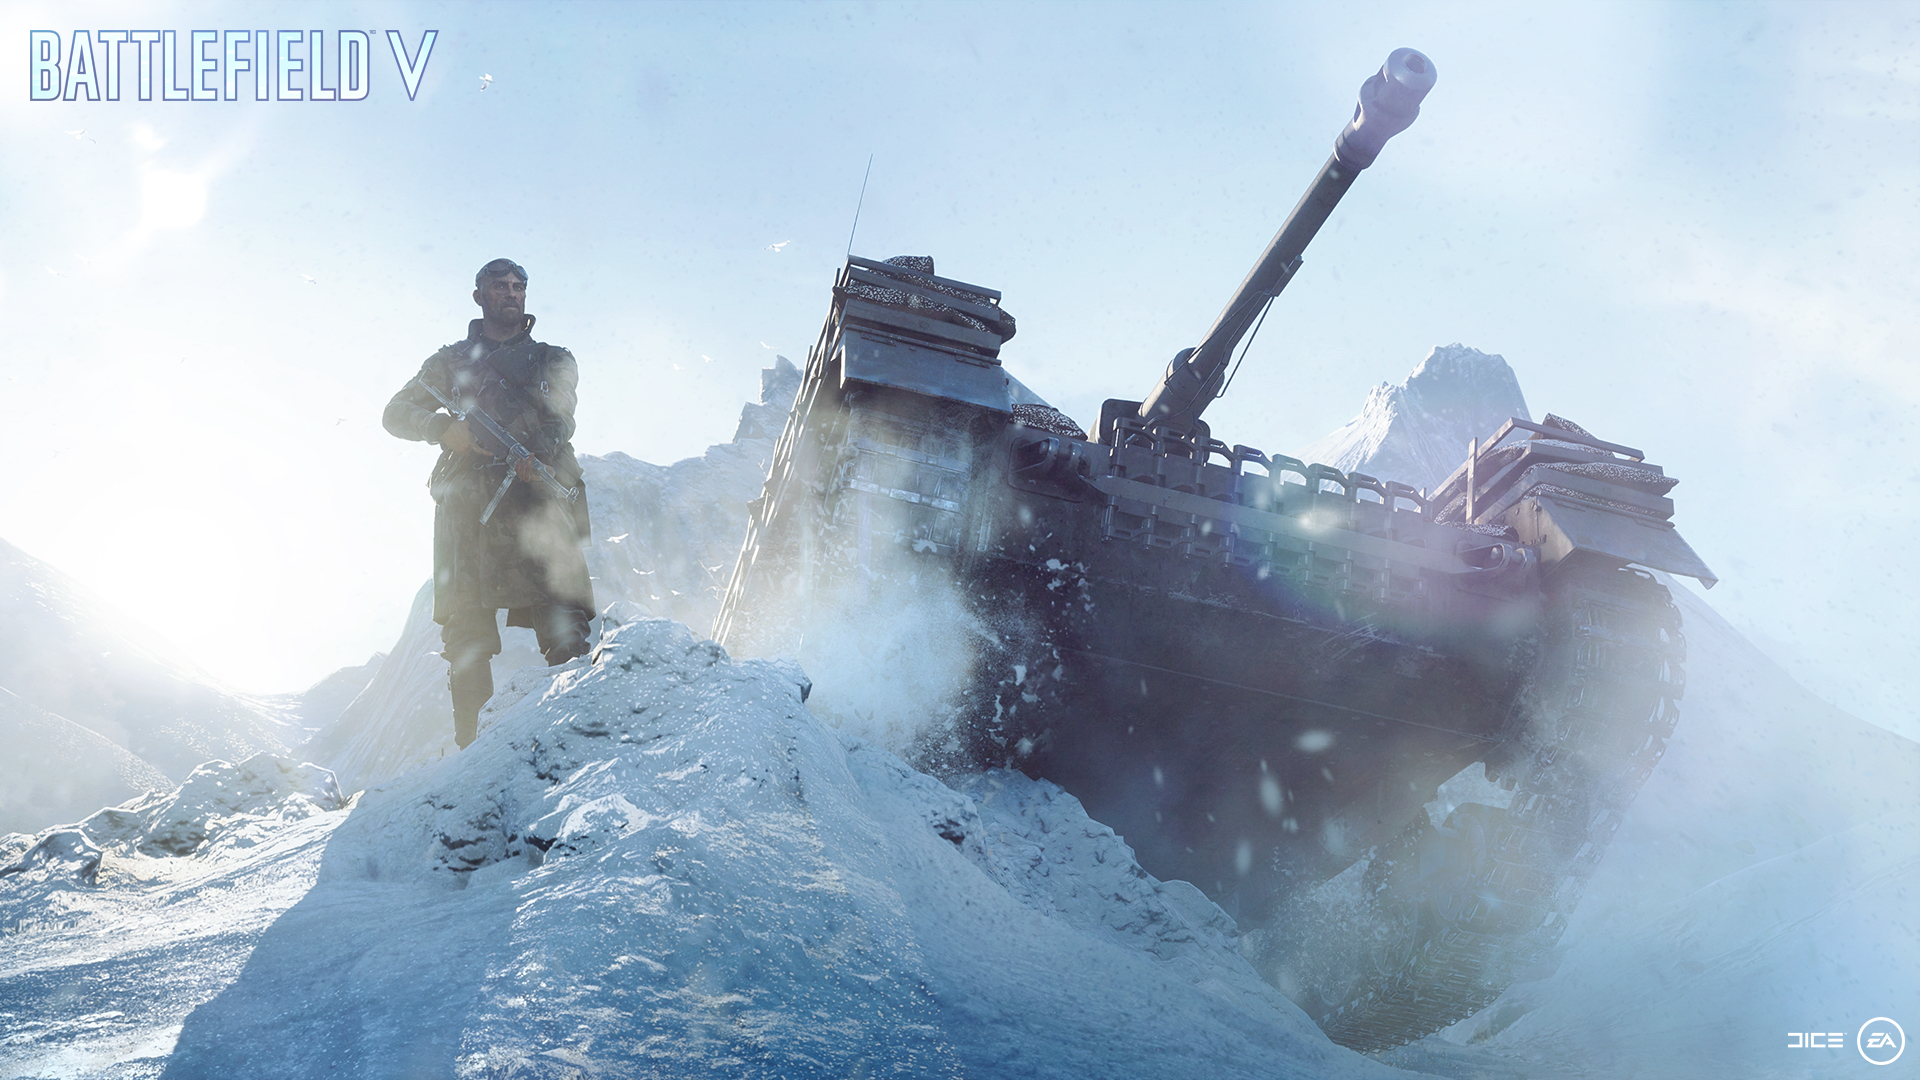 Battlefield V review -- an unfinished work of art | VentureBeat